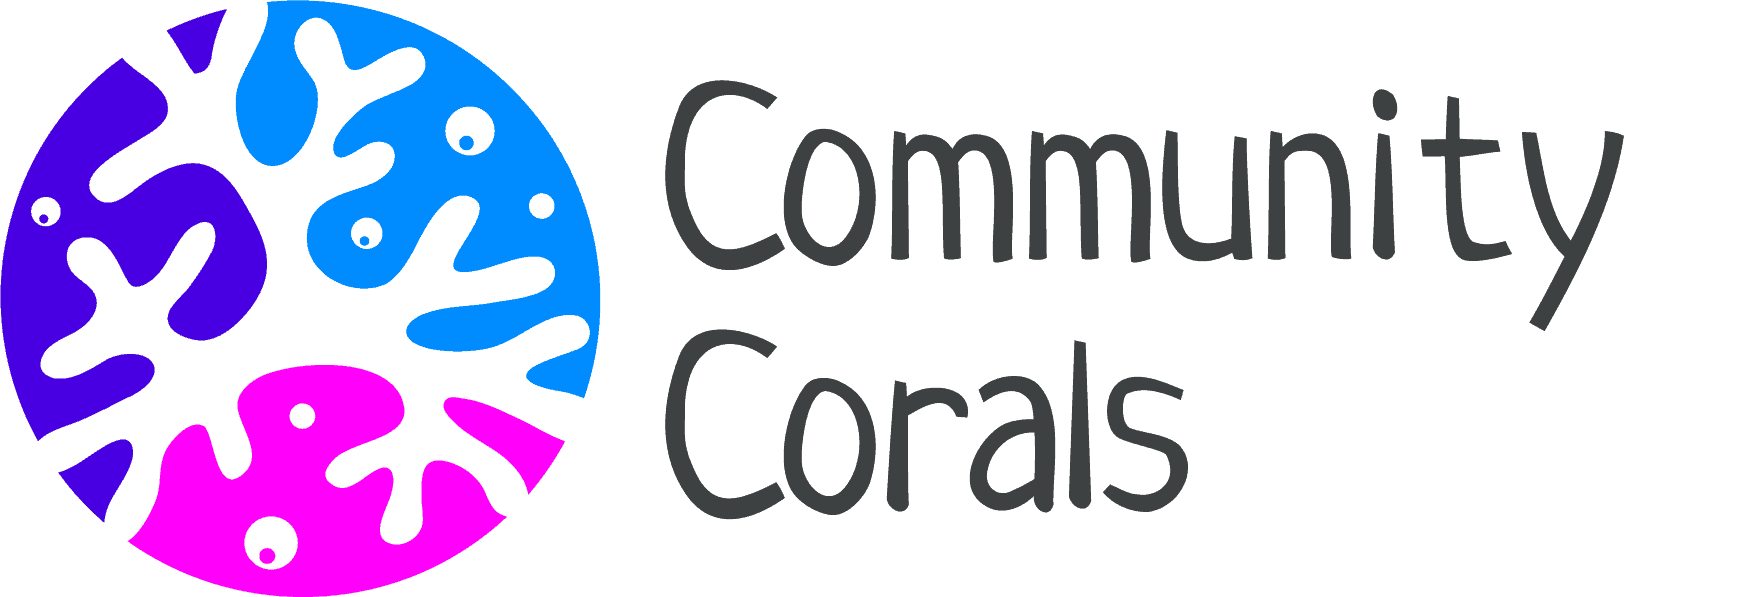 CommunityCorals